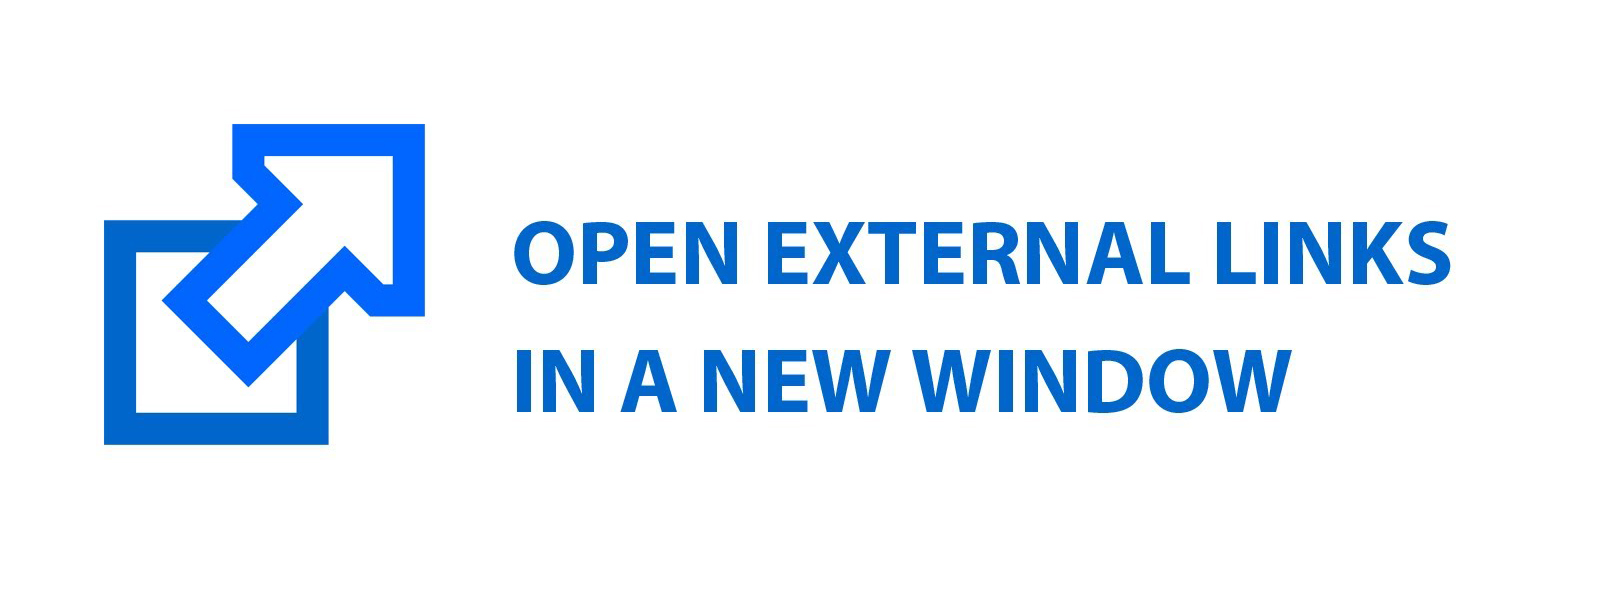 Open External Links in a New Window. Image Source: YouTube